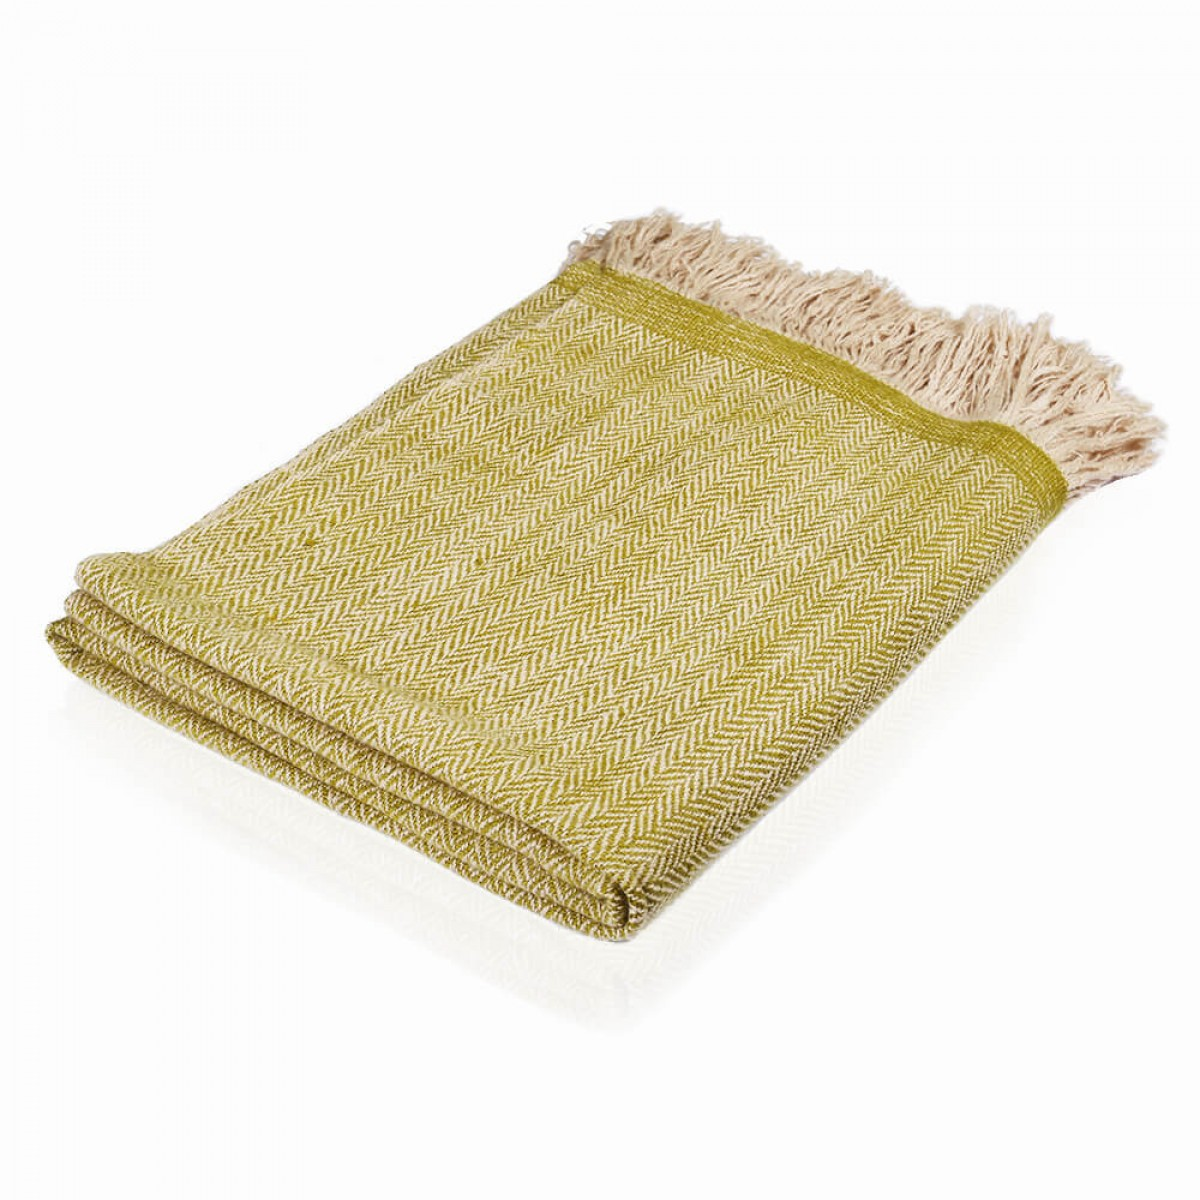 Cashmere Throw in Herringbone Weave - Olive